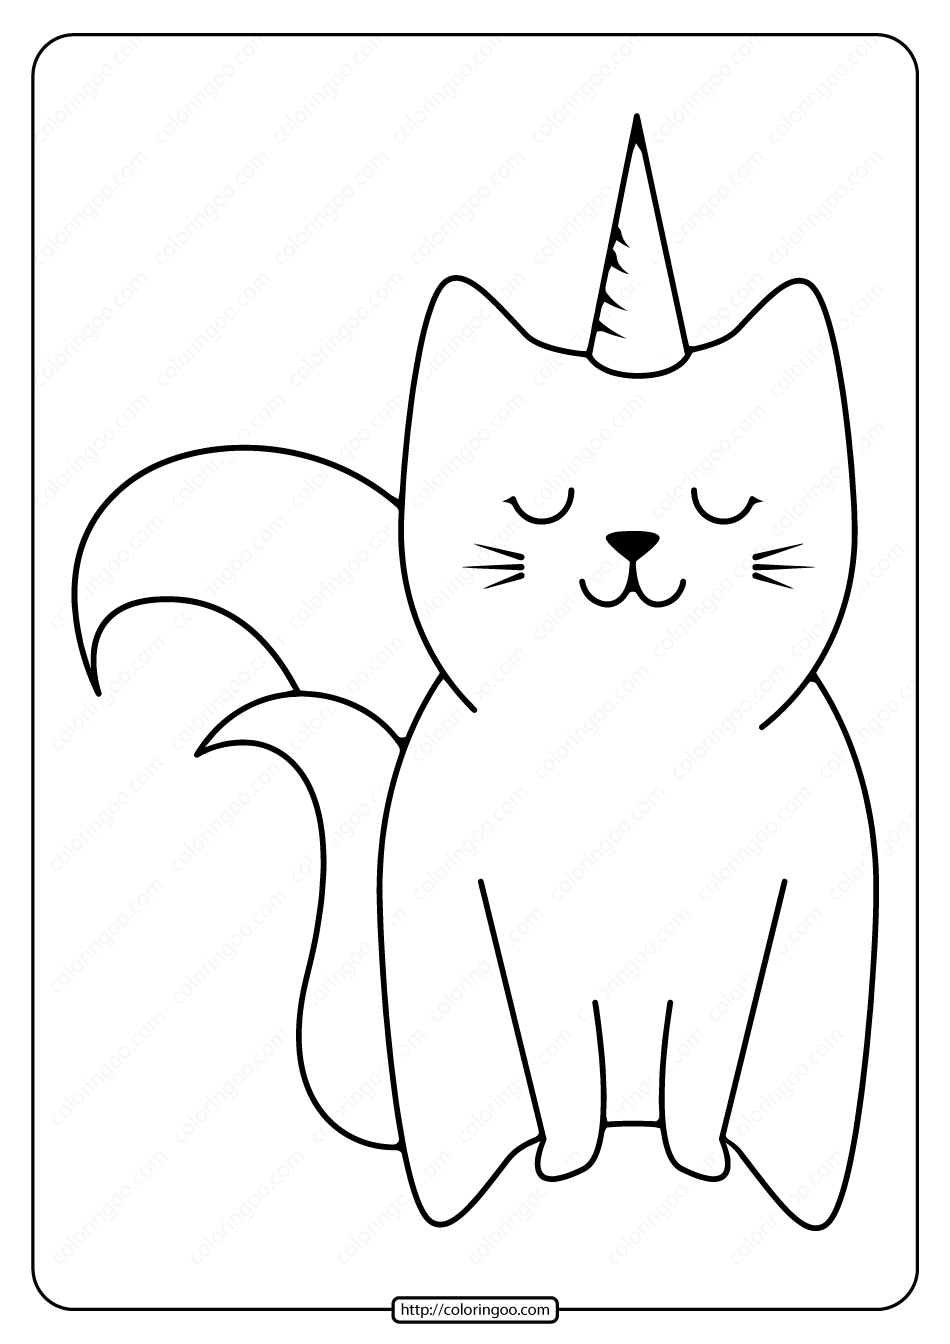 Free Printable Cute Caticorn Pdf Coloring Page Unicorn Coloring Pages Coloring Pages Free Printables